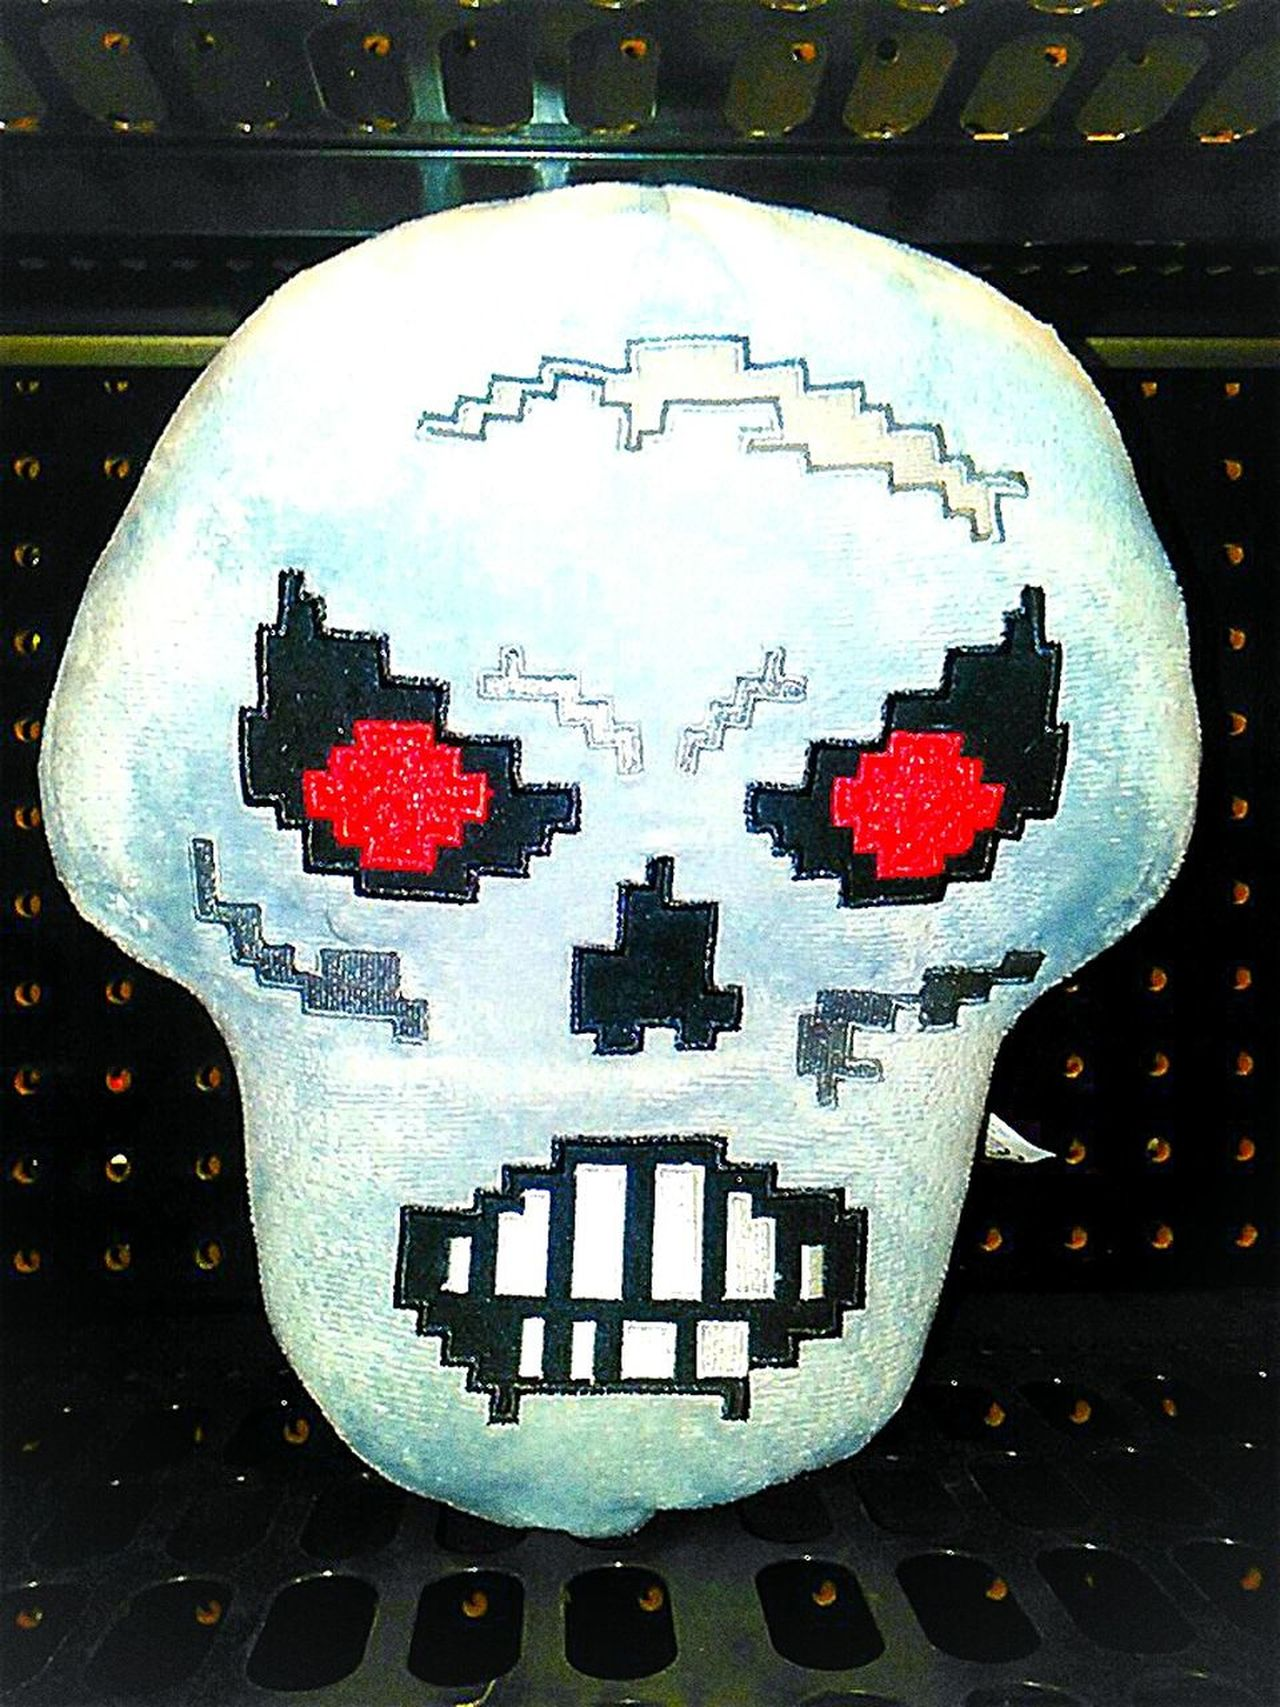 Skull Skullduggery Check This Out Skulls Skull Face Skullporn Red Eyes Skullhead Skull Art Skulls💀 Skullart Skulls 💀 Skulls♥ Skulls. Redeyes Cranium Craniums Skullshit Red Eyes Radiation Poisoning A Dose Of Radiation Checkthisout Redeye Red Eyed Skull Little Dose Of Radiation